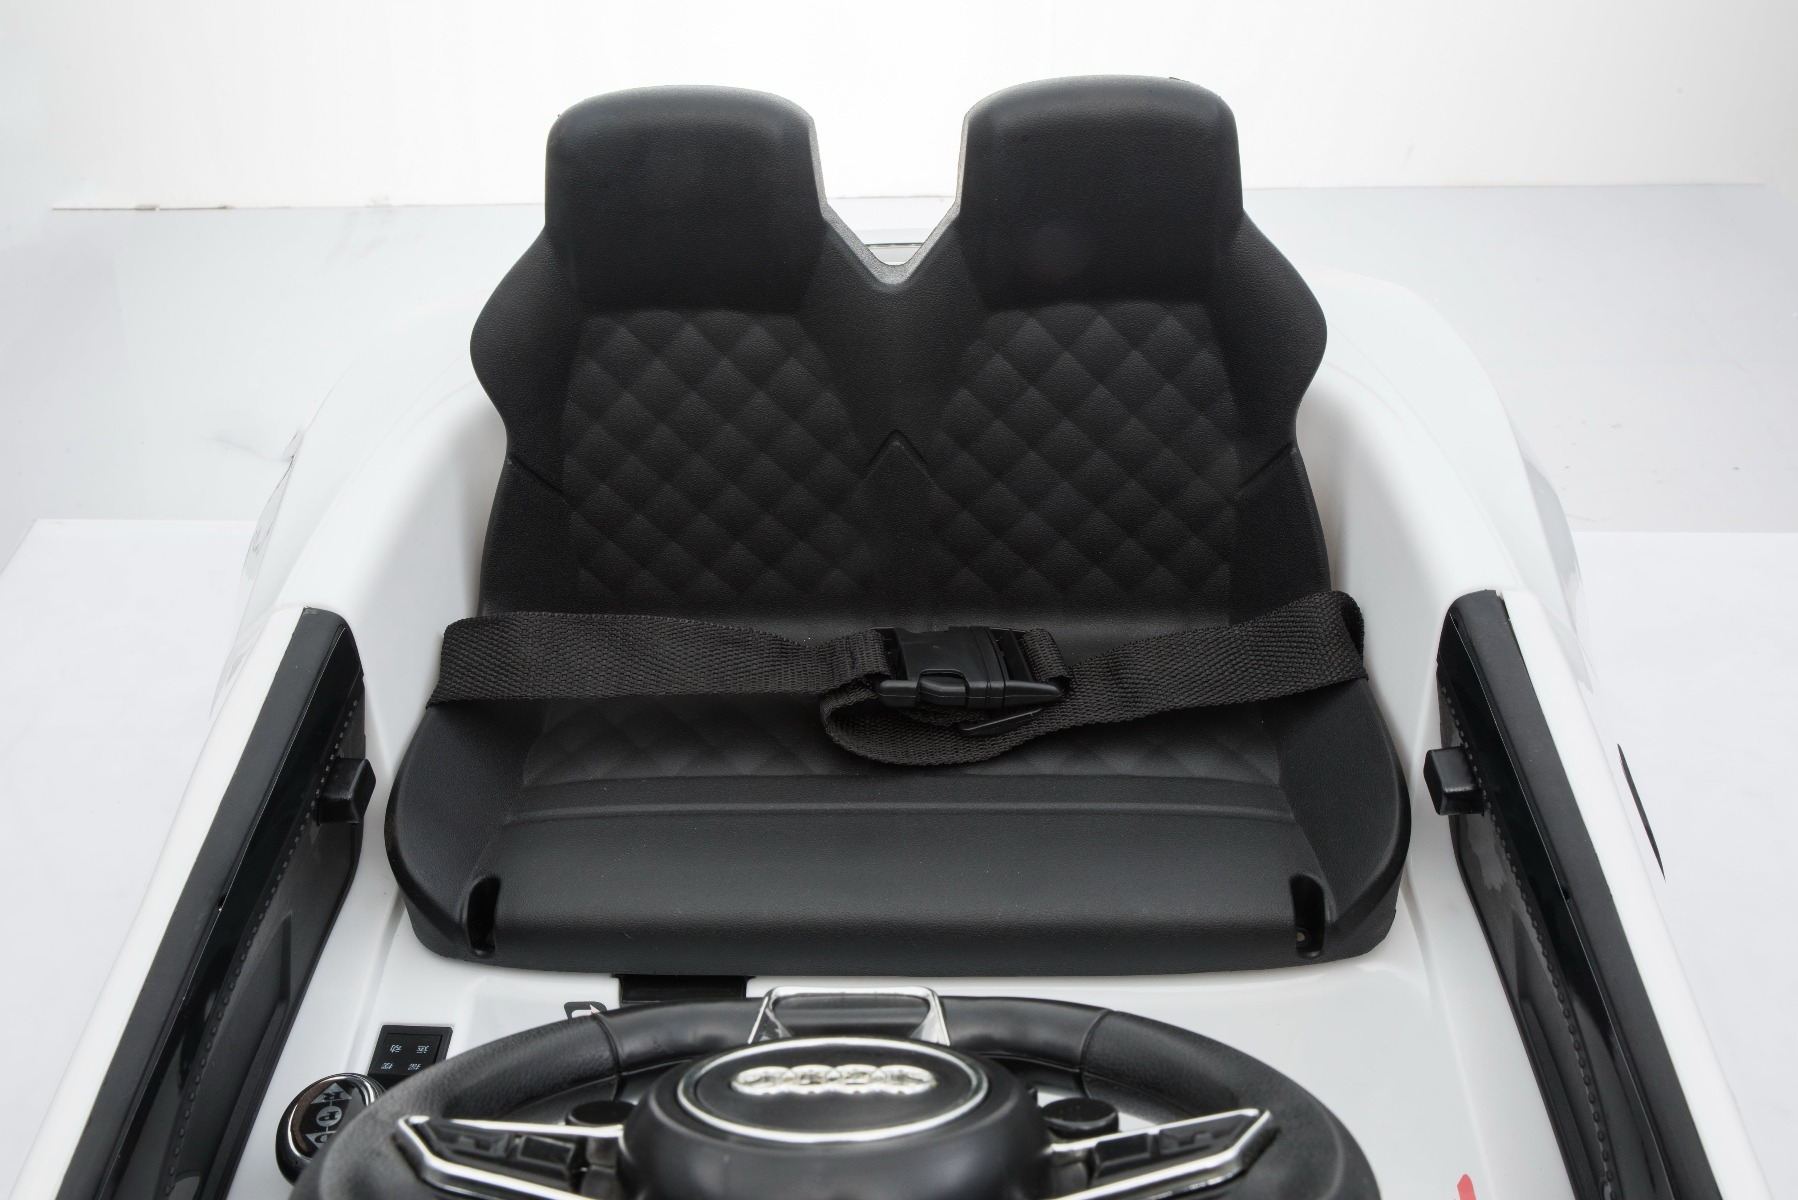 Double leather seats